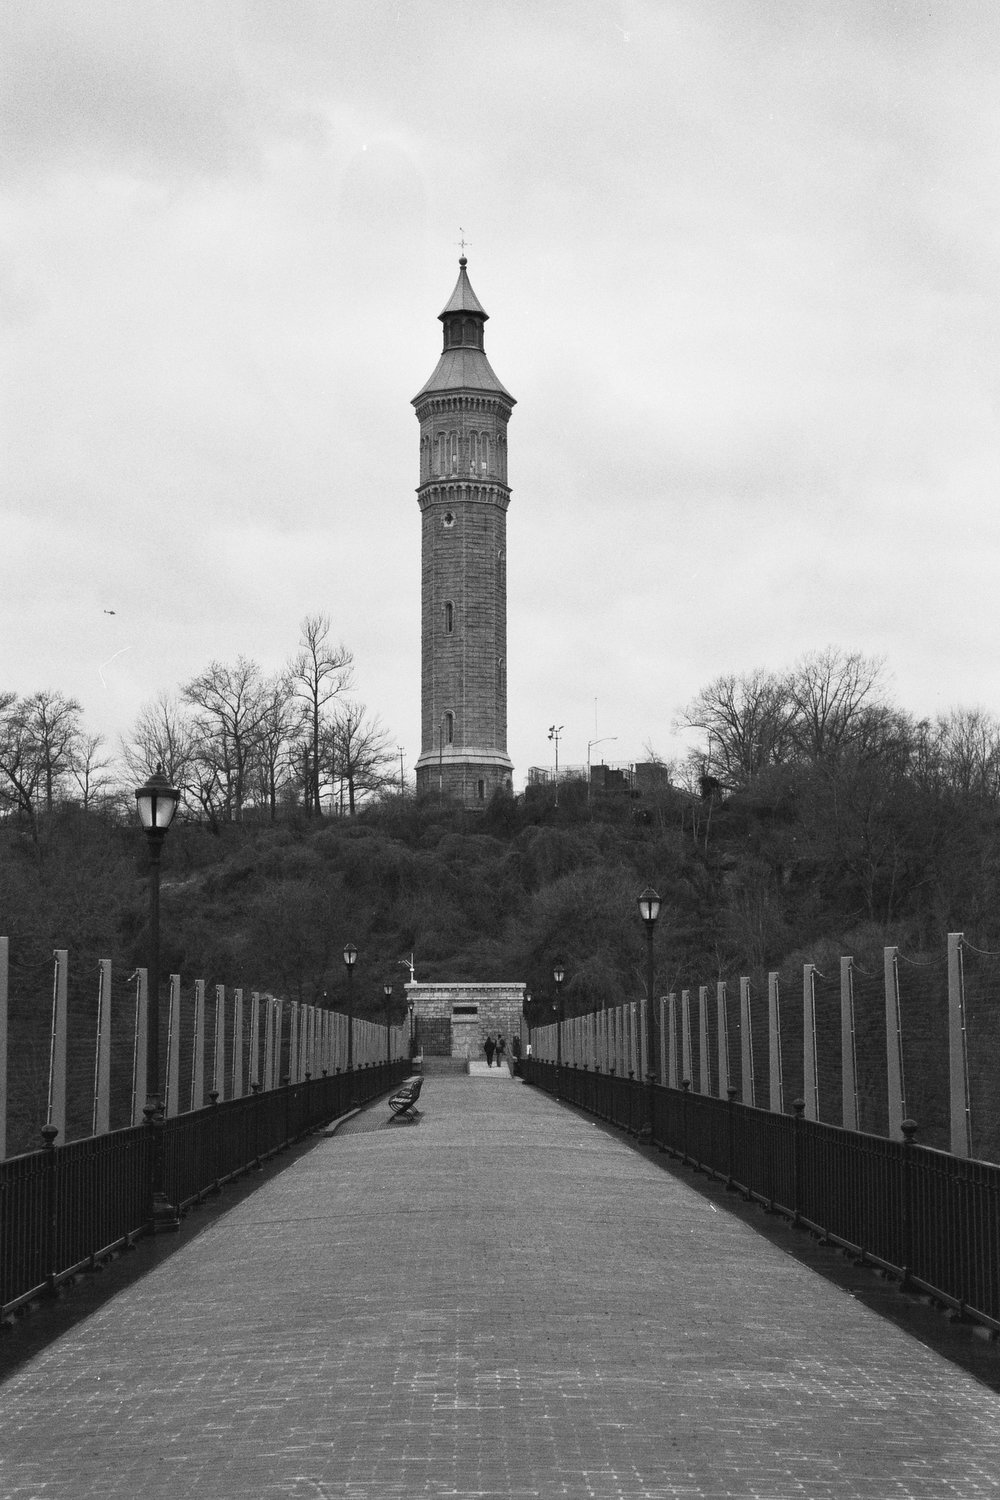 The High Bridge Water Tower as seen from the bridge, looking back towards Washington Heights. New York City.  Details :  film, 35mm Ilford Delta 400. Pentax K1000. Fletcher Berryman, 2018.